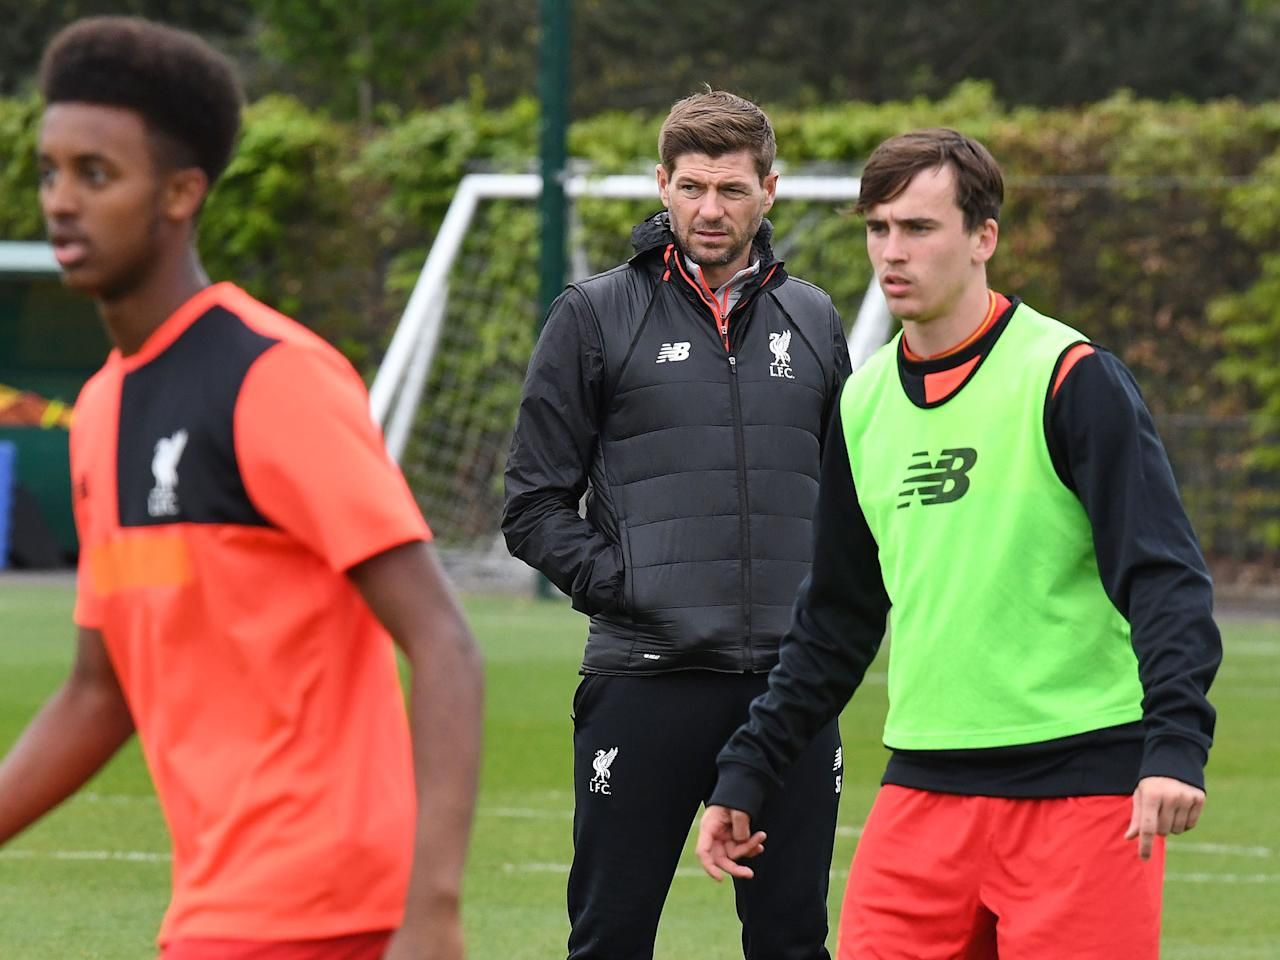 Steven Gerrard: To play for Liverpool you've got to be world class